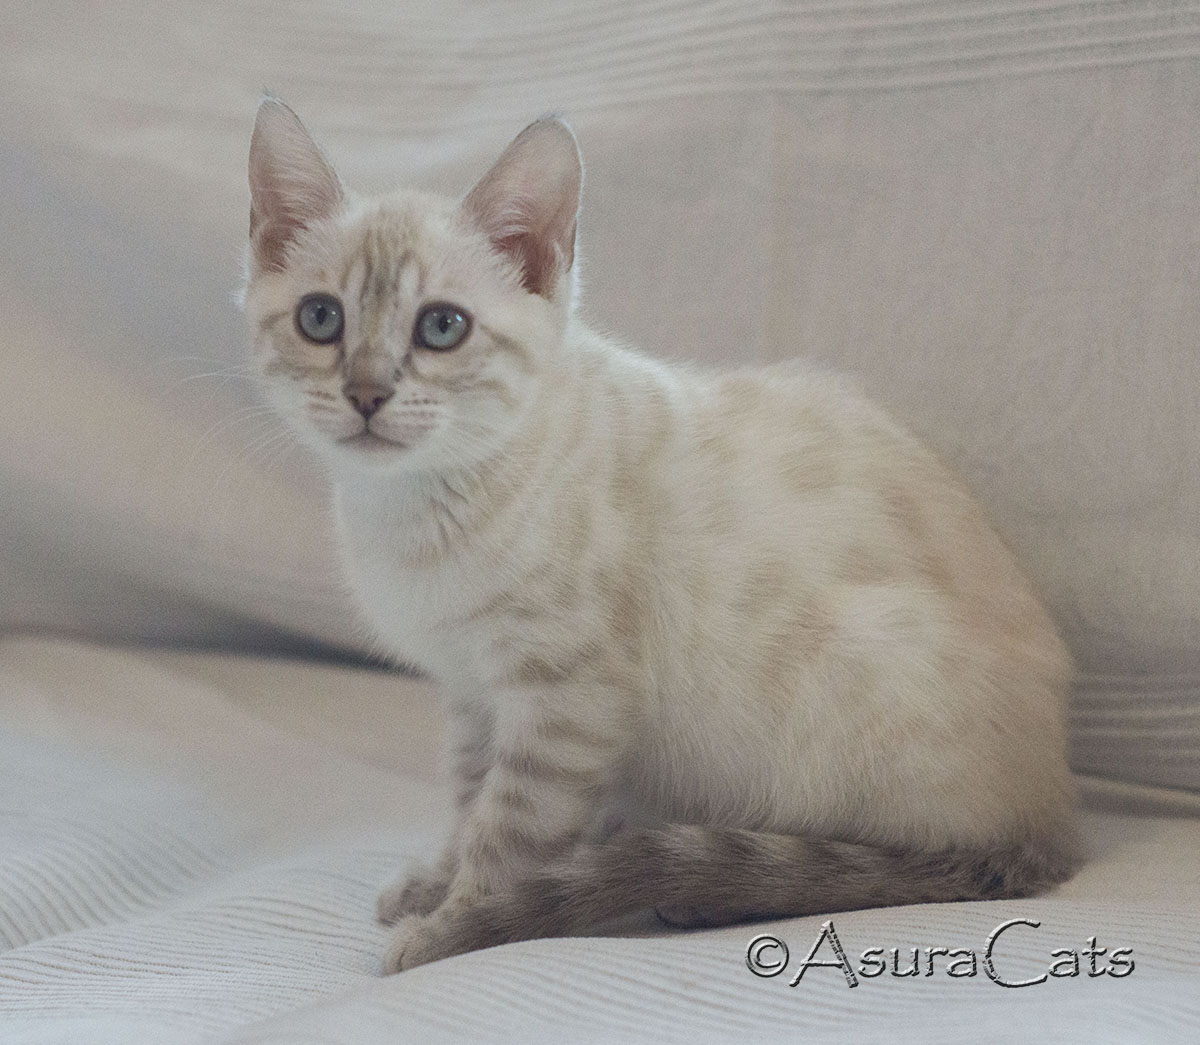 AsuraCats Fluttershy - Blue Lynx point snow spotted female Bengal kitten